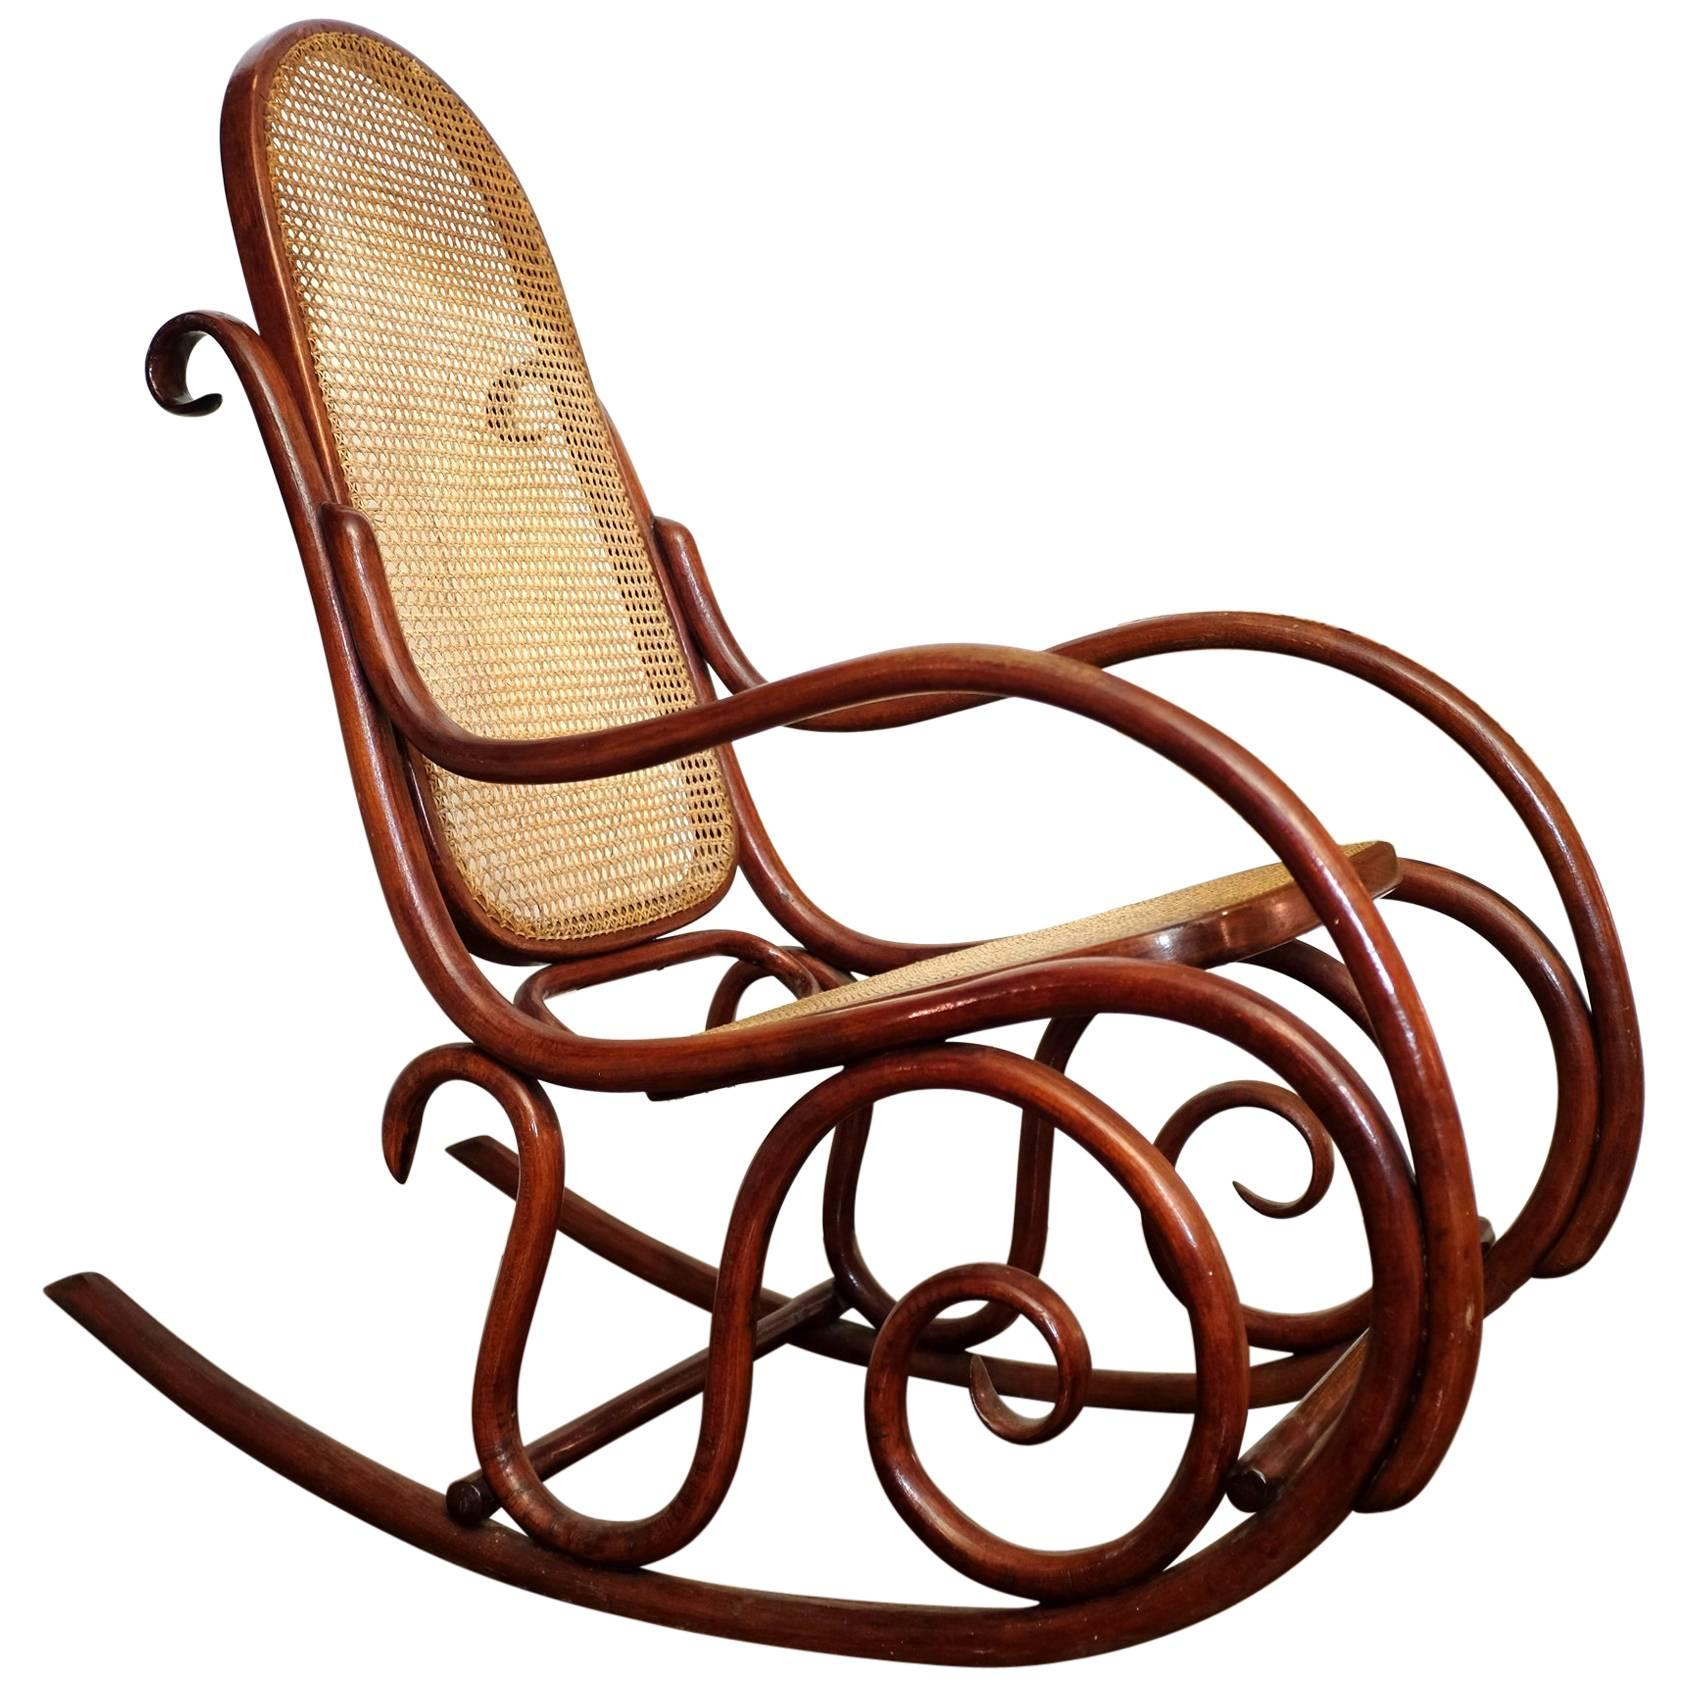 Thonet No10 Rocking Chair in Bentwood and Cane at 1stdibs